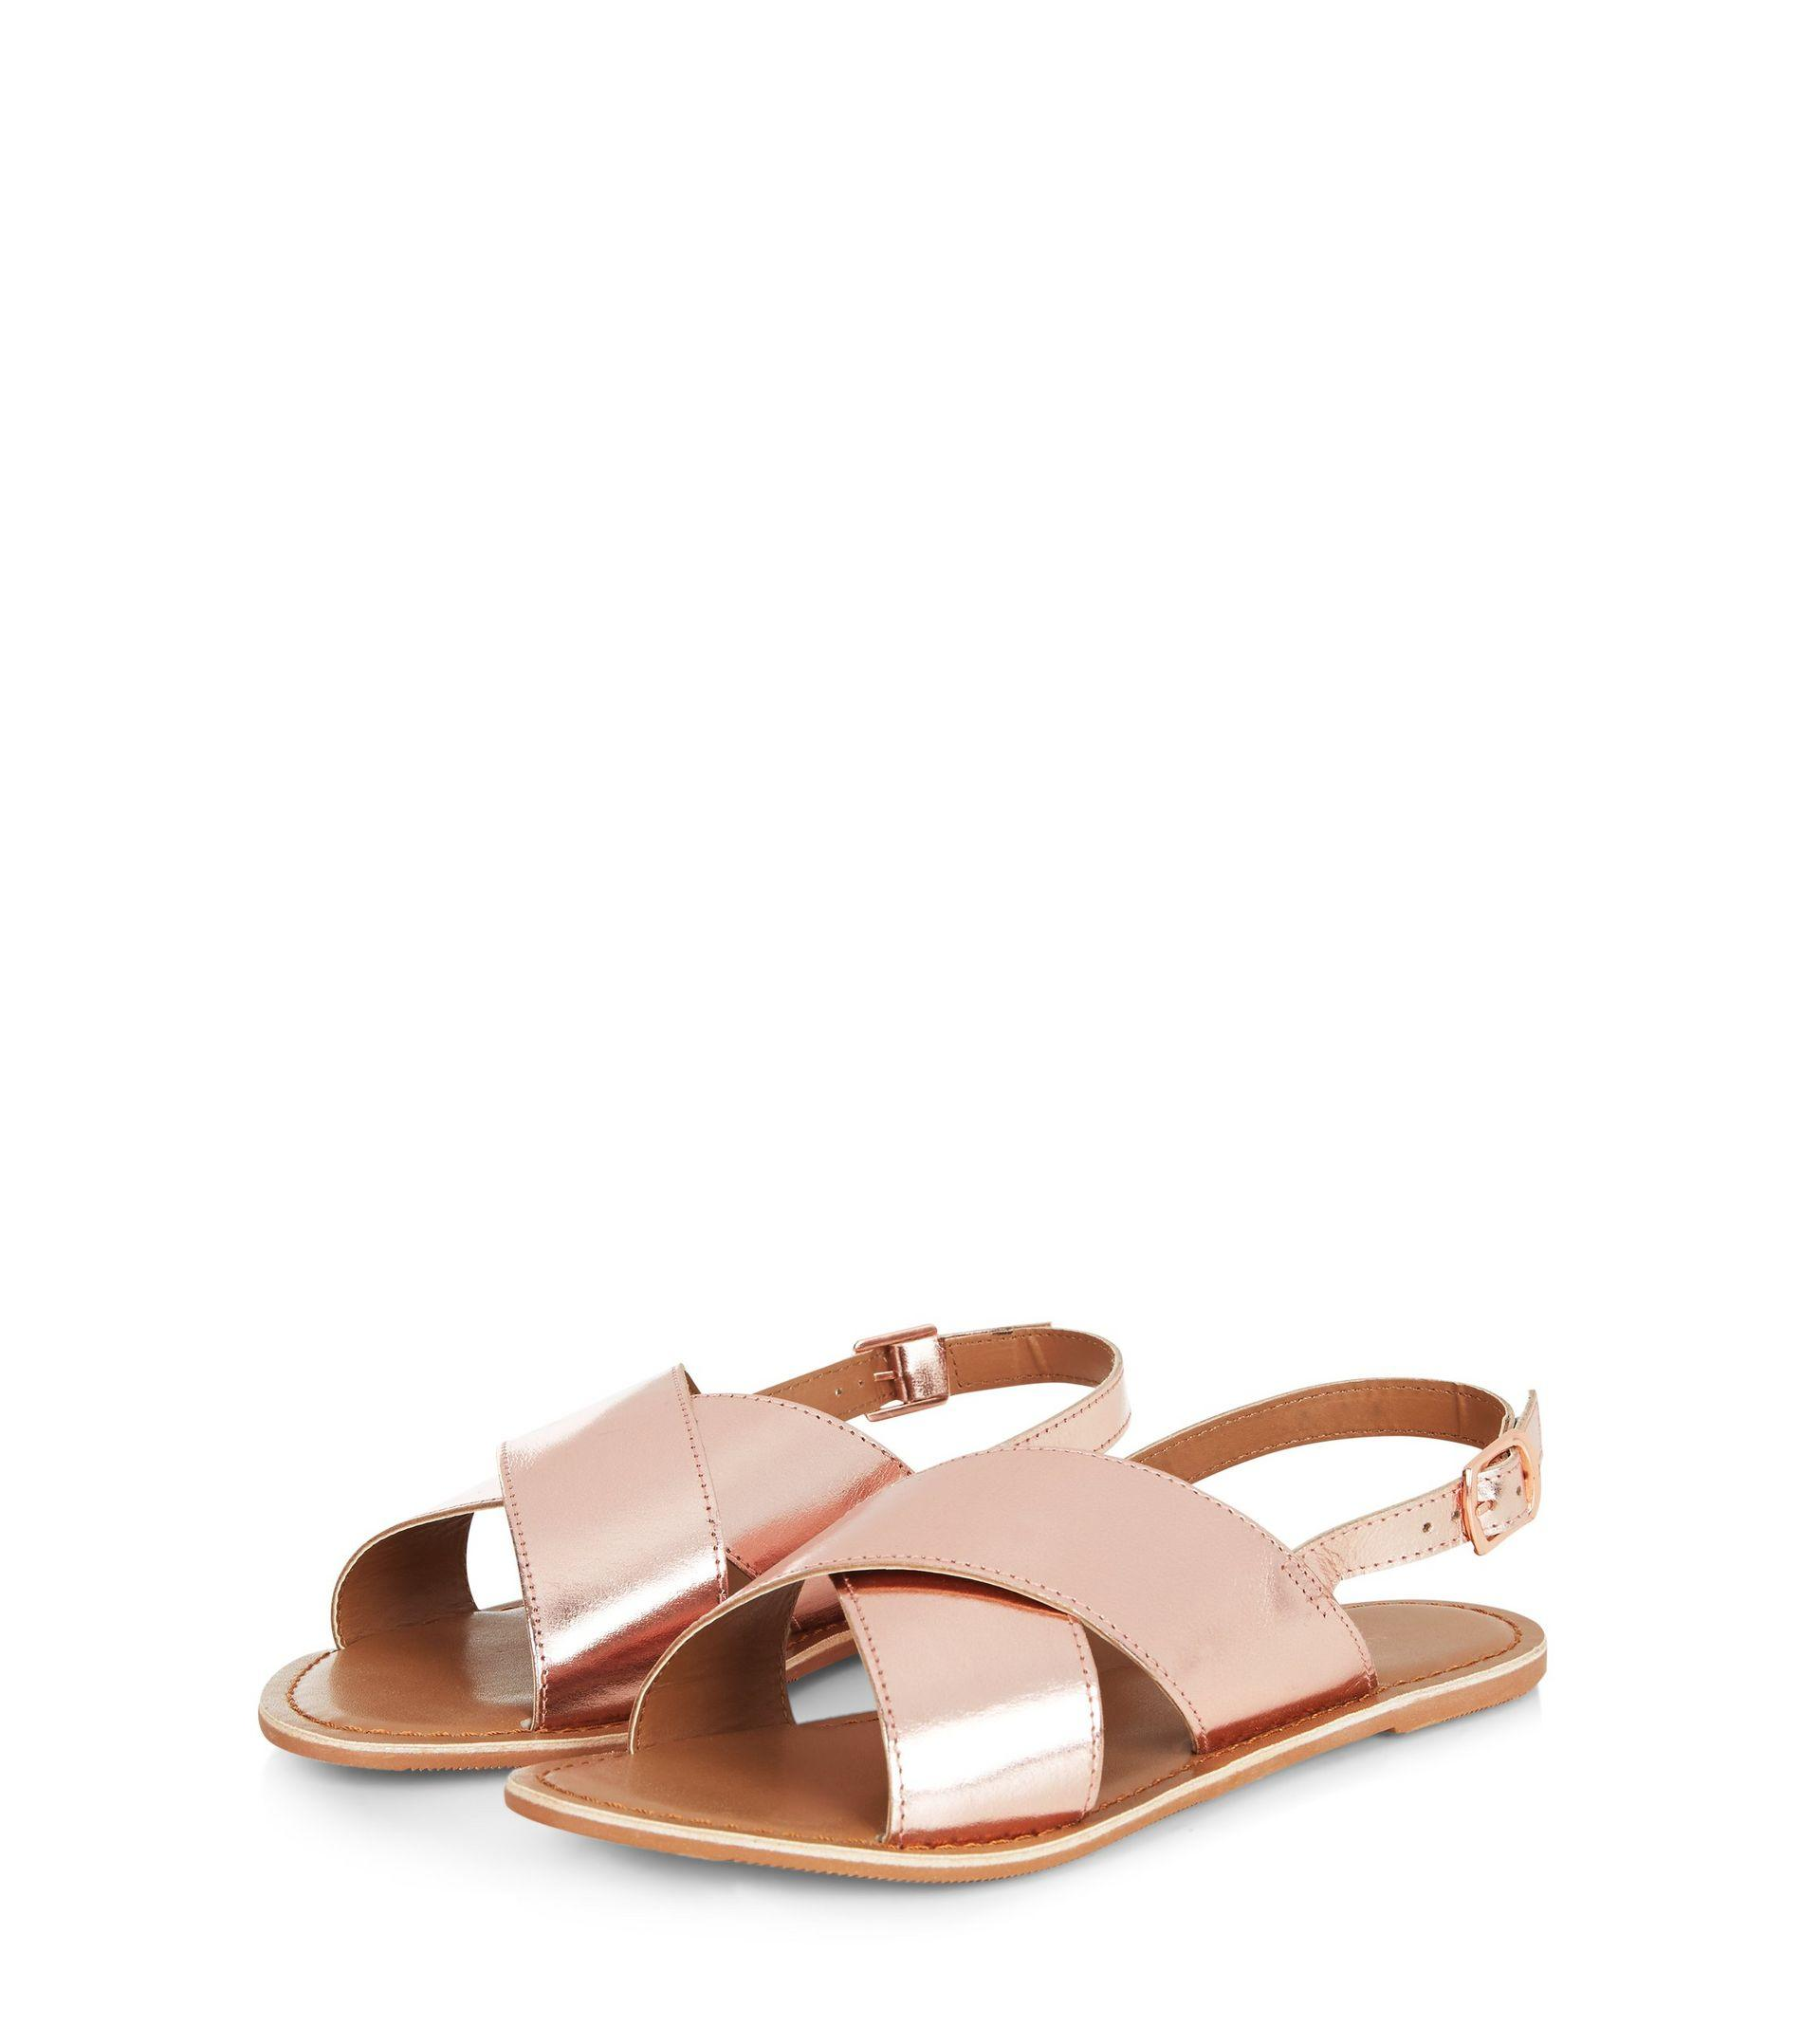 88b2130b1 New Look Rose Gold Leather Folding Cross Strap Sandals in Pink - Lyst